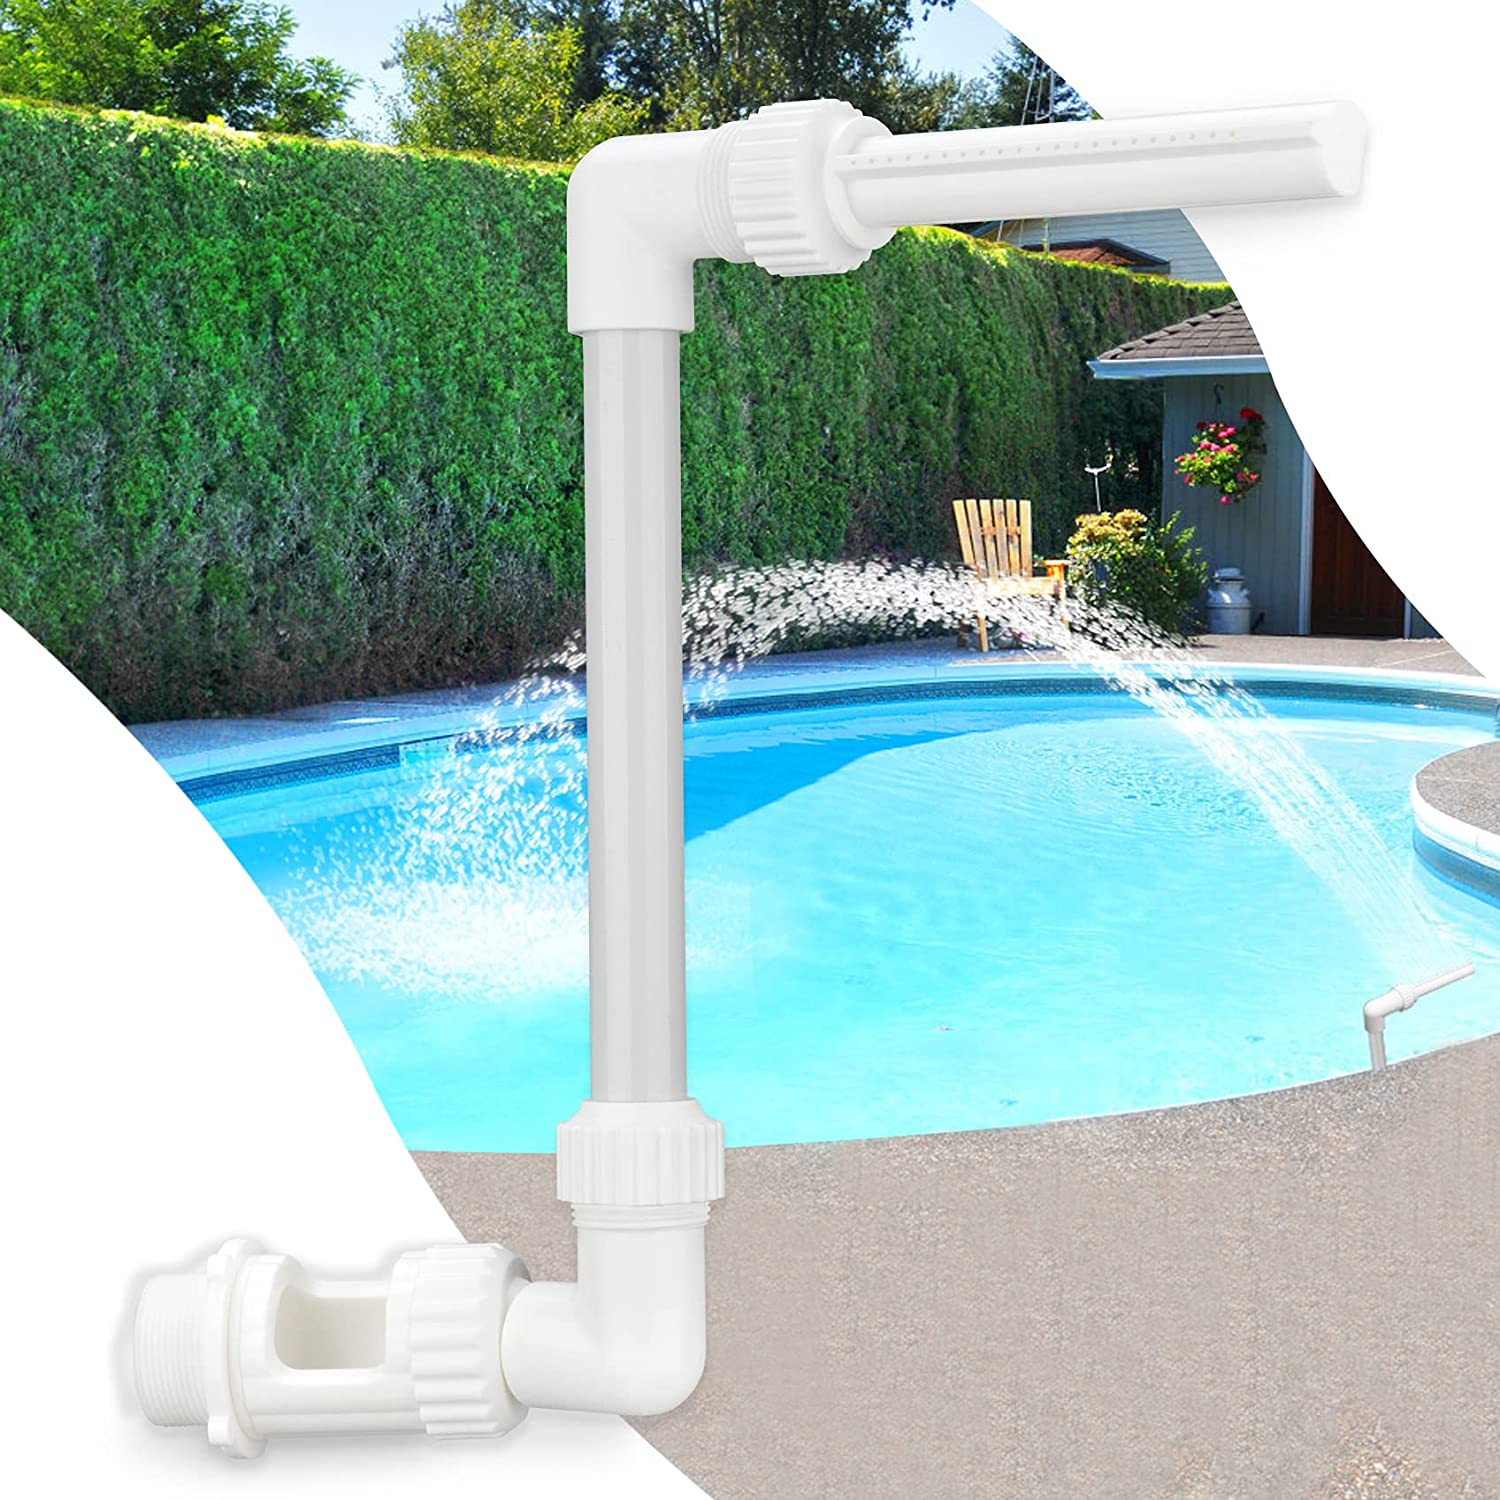 Klleyna Water-Fountain Swimming-Pool Sprinkle Accessories - Waterfall Above In-ground Pool, Cooling Spray for Outdoor Garden Pond Power Saving, High Pressure Pool Jet Fountain Attachment for Pump